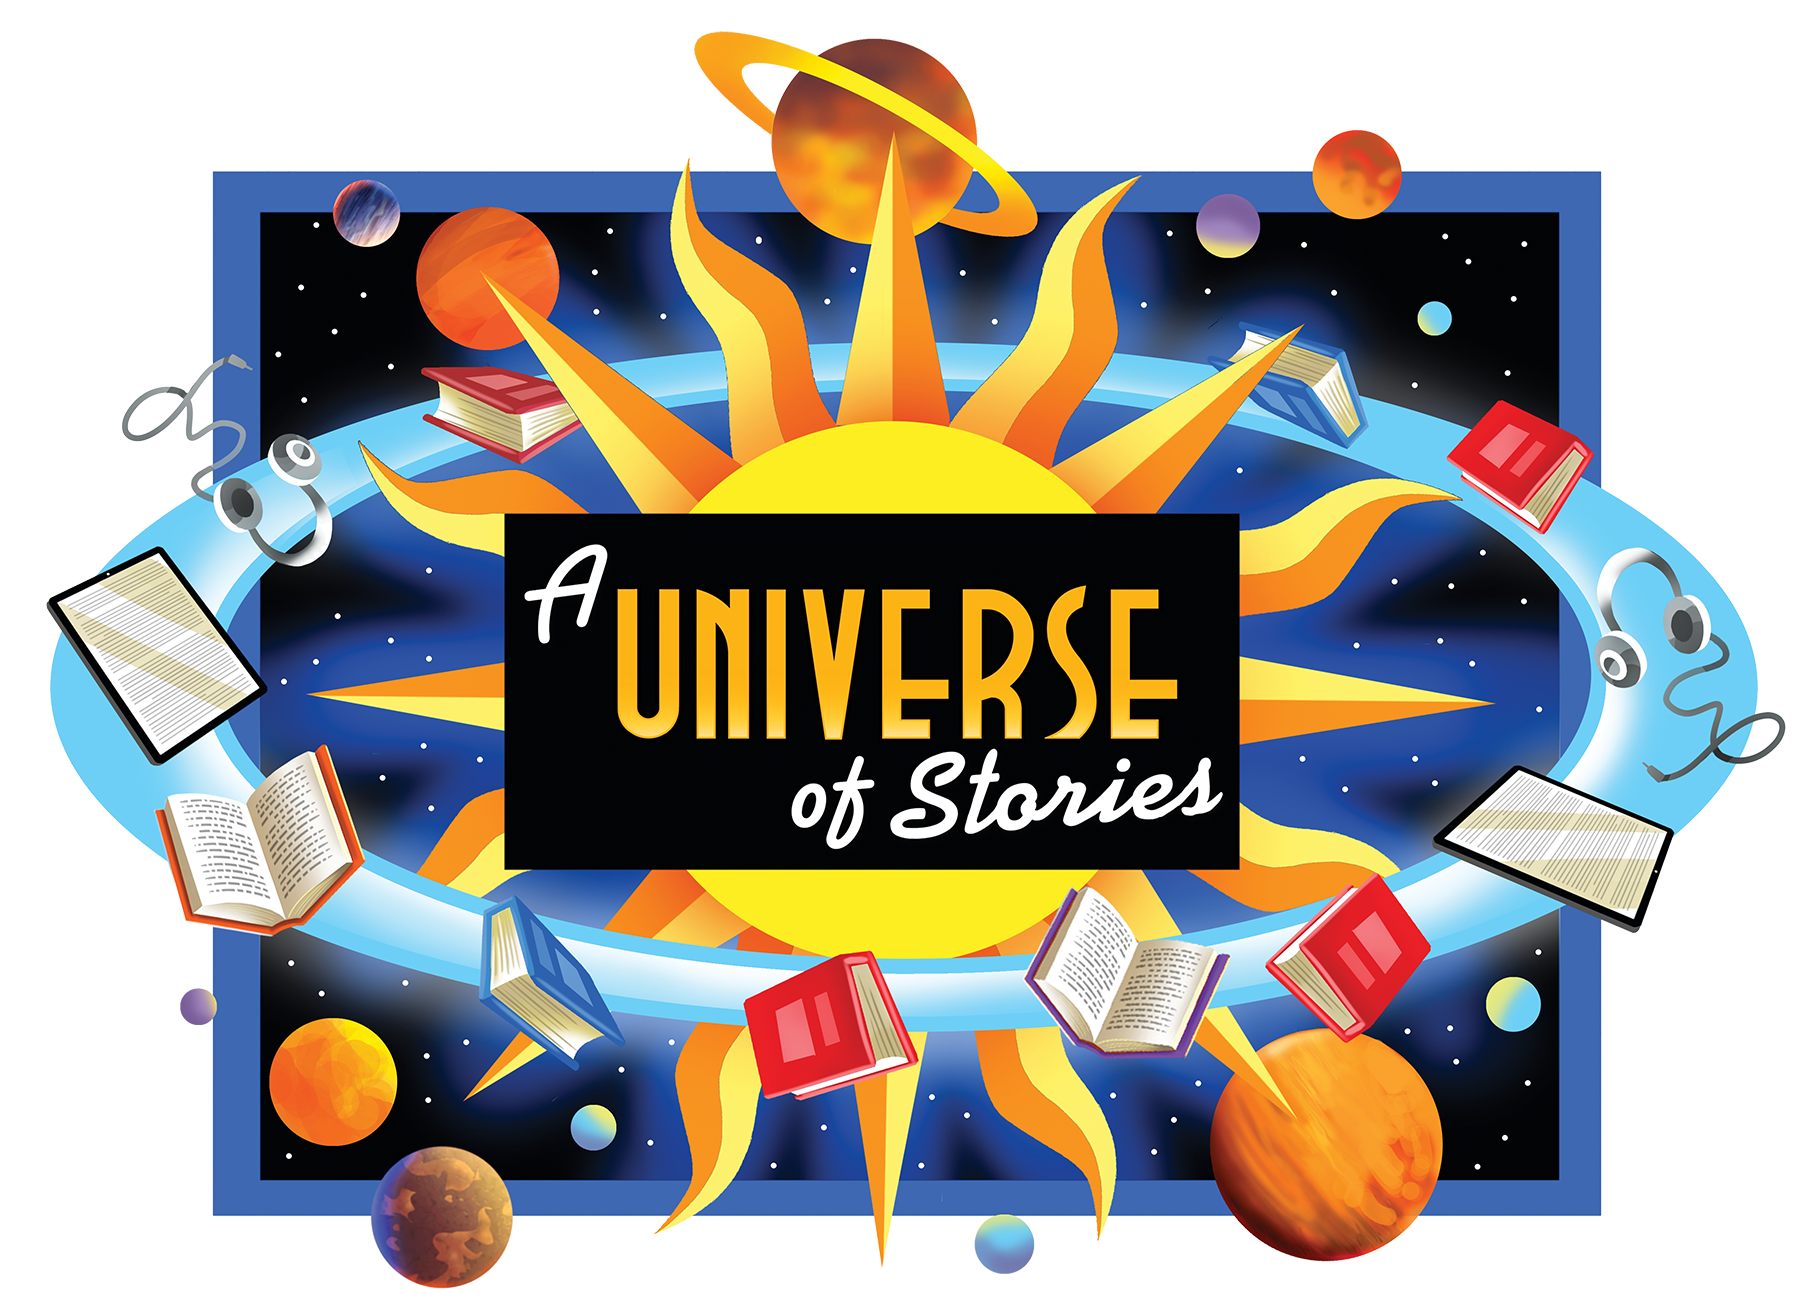 A Universe of Stories image with orbiting books